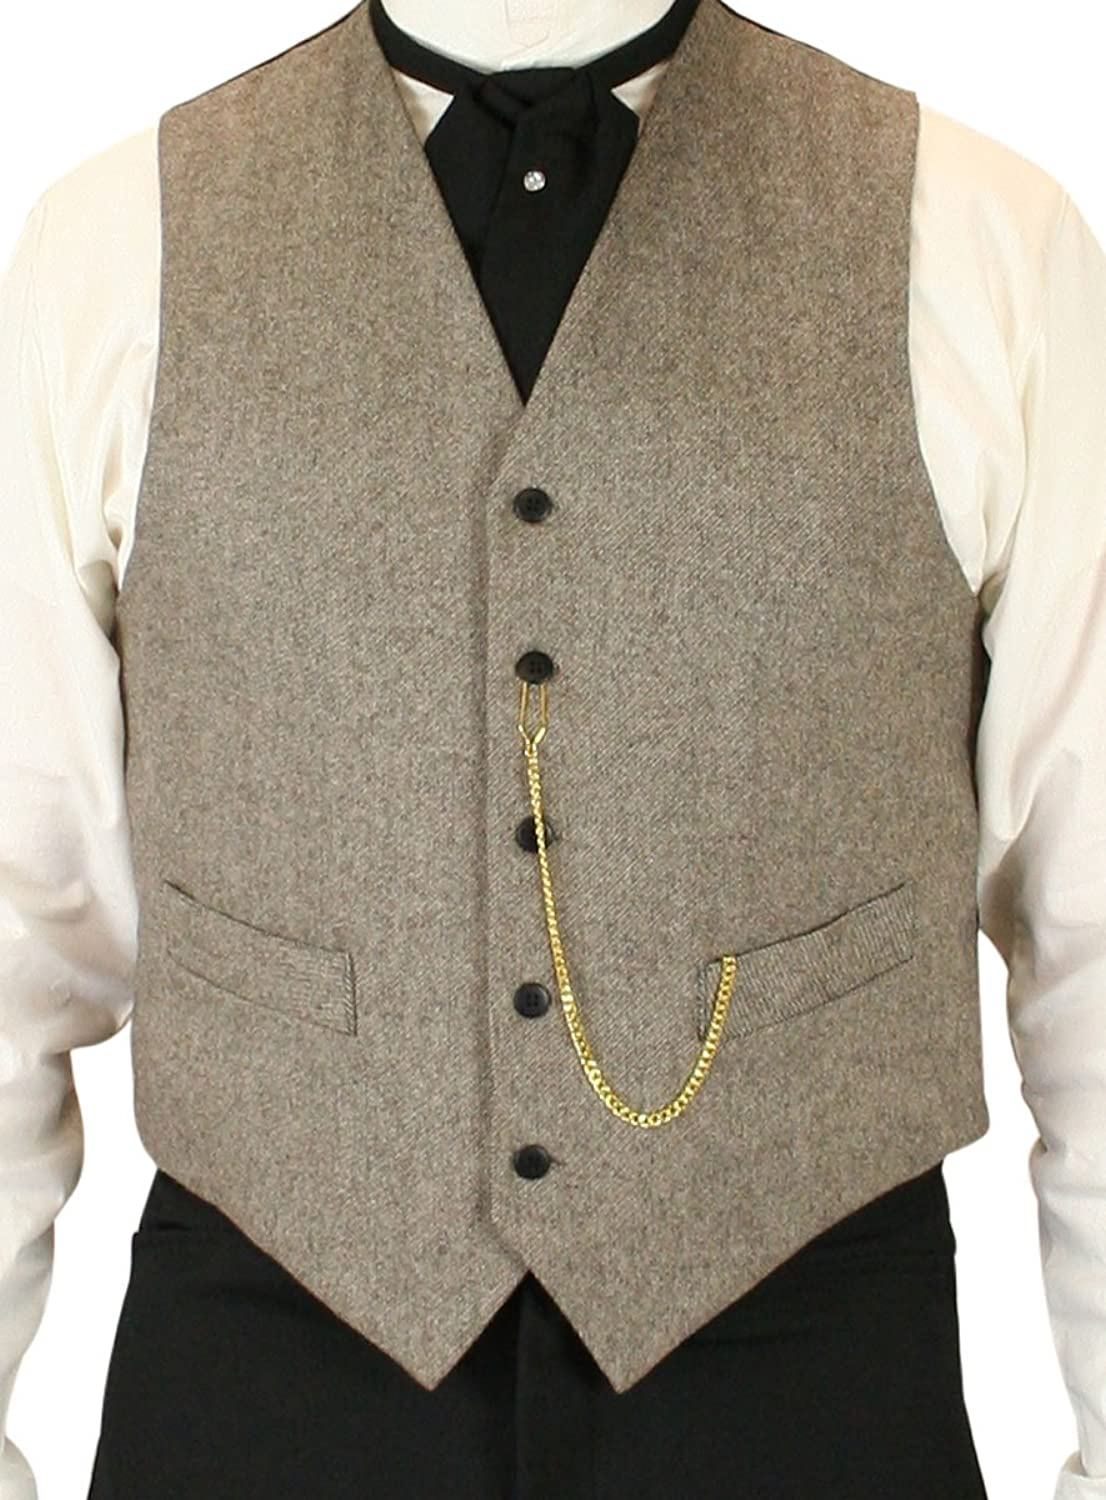 Men's Steampunk Clothing, Costumes, Fashion  100% Wool Tweed Dress Vest Historical Emporium Mens Peabody $68.95 AT vintagedancer.com